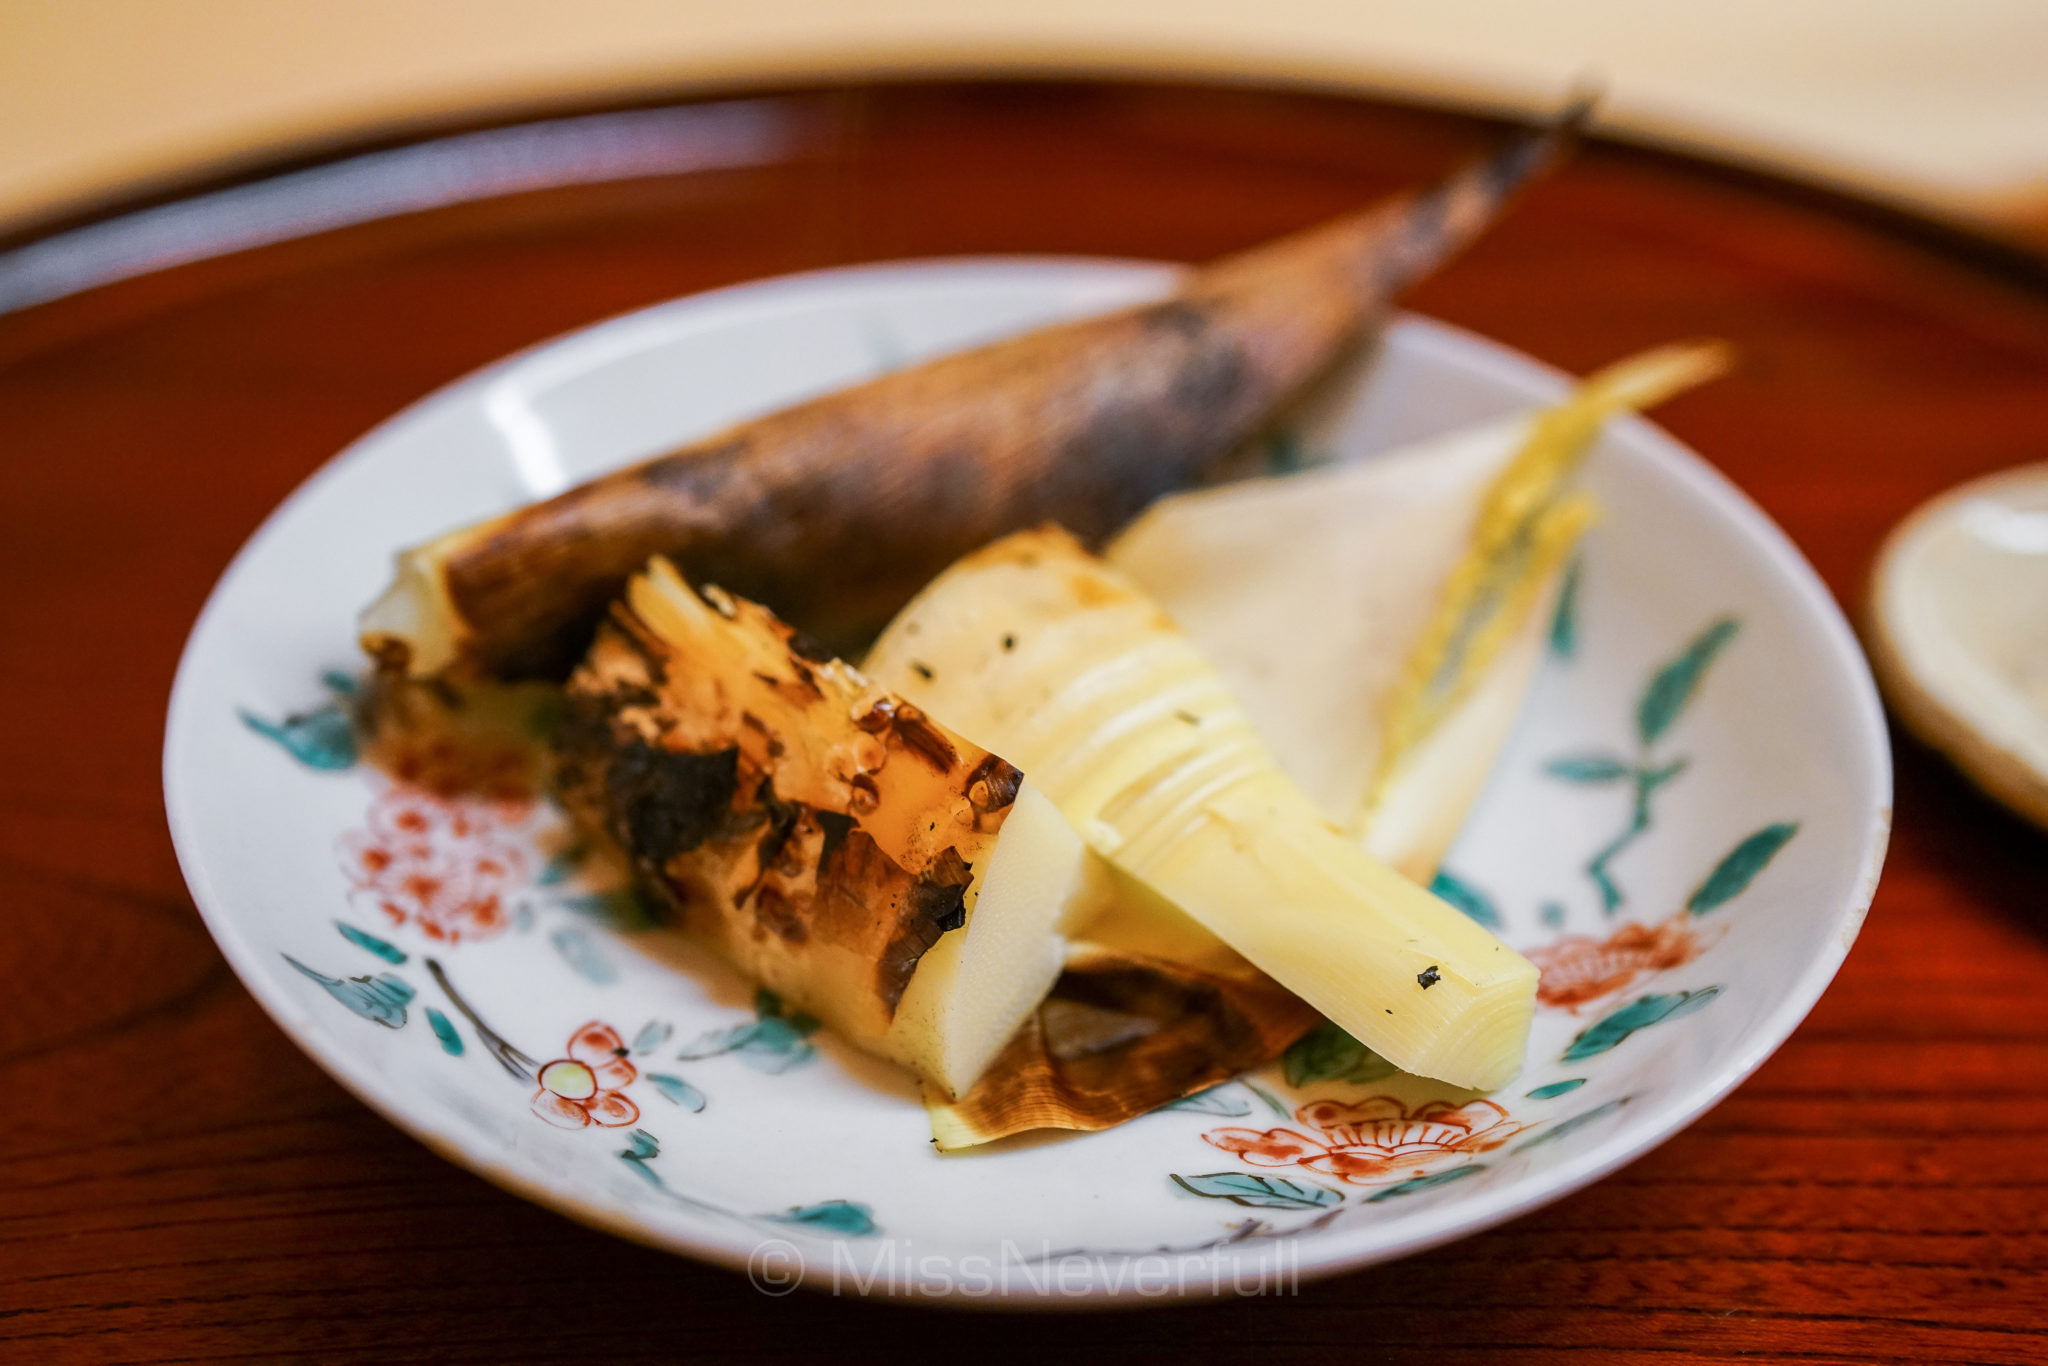 8. 京都の筍炭火焼 | Char-grilled bamboo shoots from Kyoto